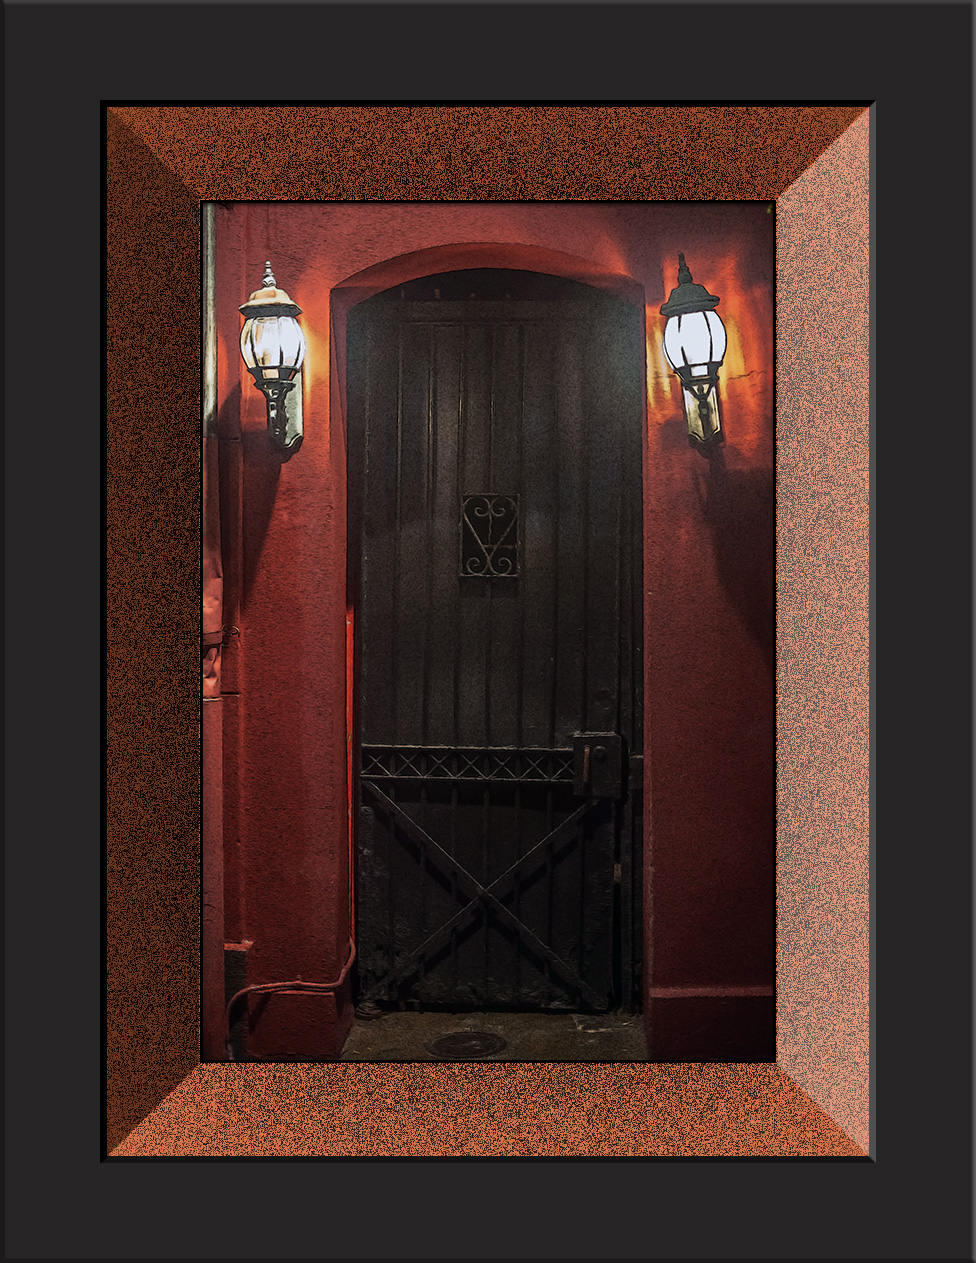 new-orleans-door-1-of-1-art-blog.jpg (976×1263)